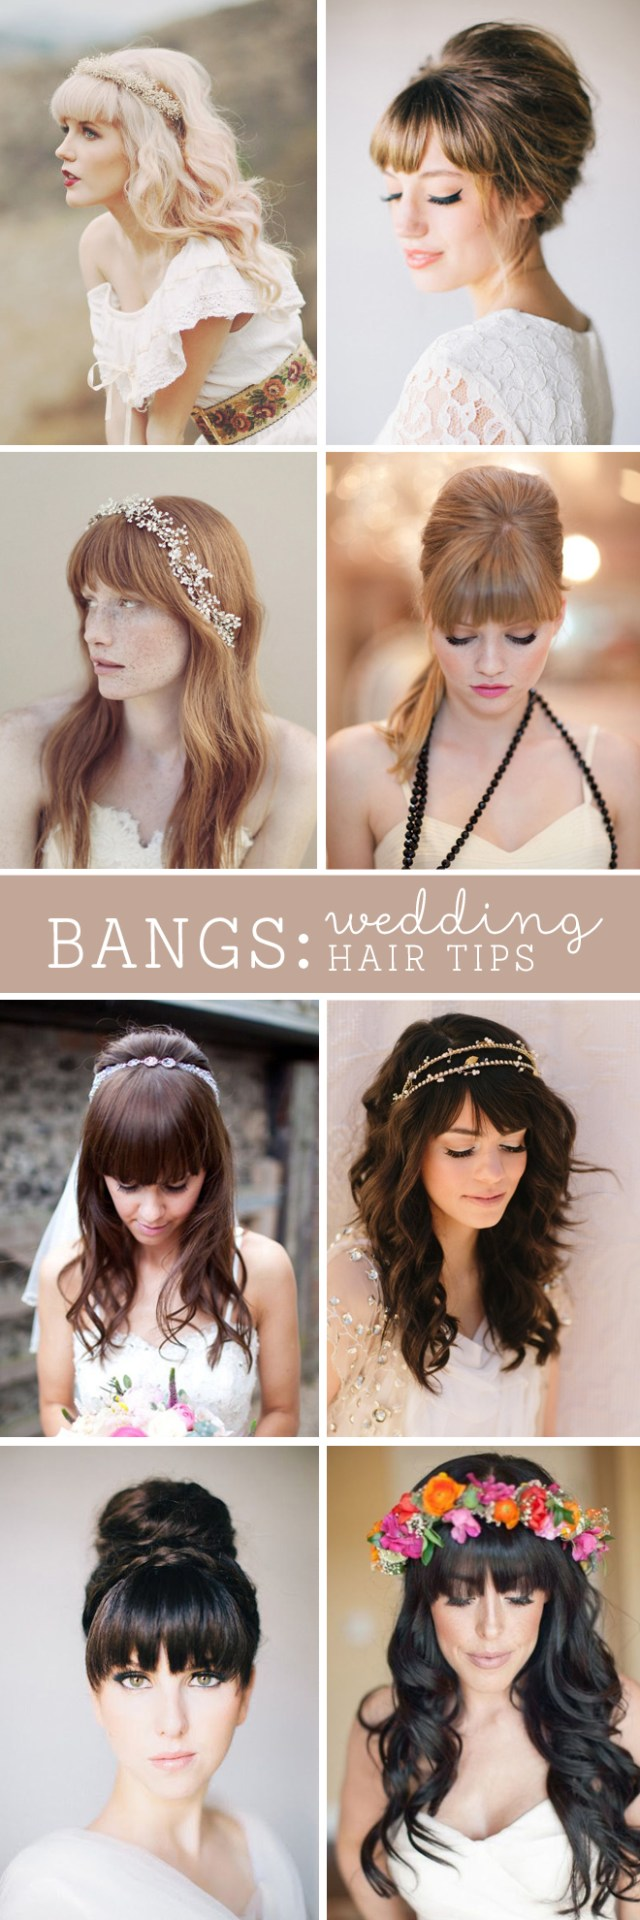 must read tips for wedding hairstyles with full fringe (bangs)!